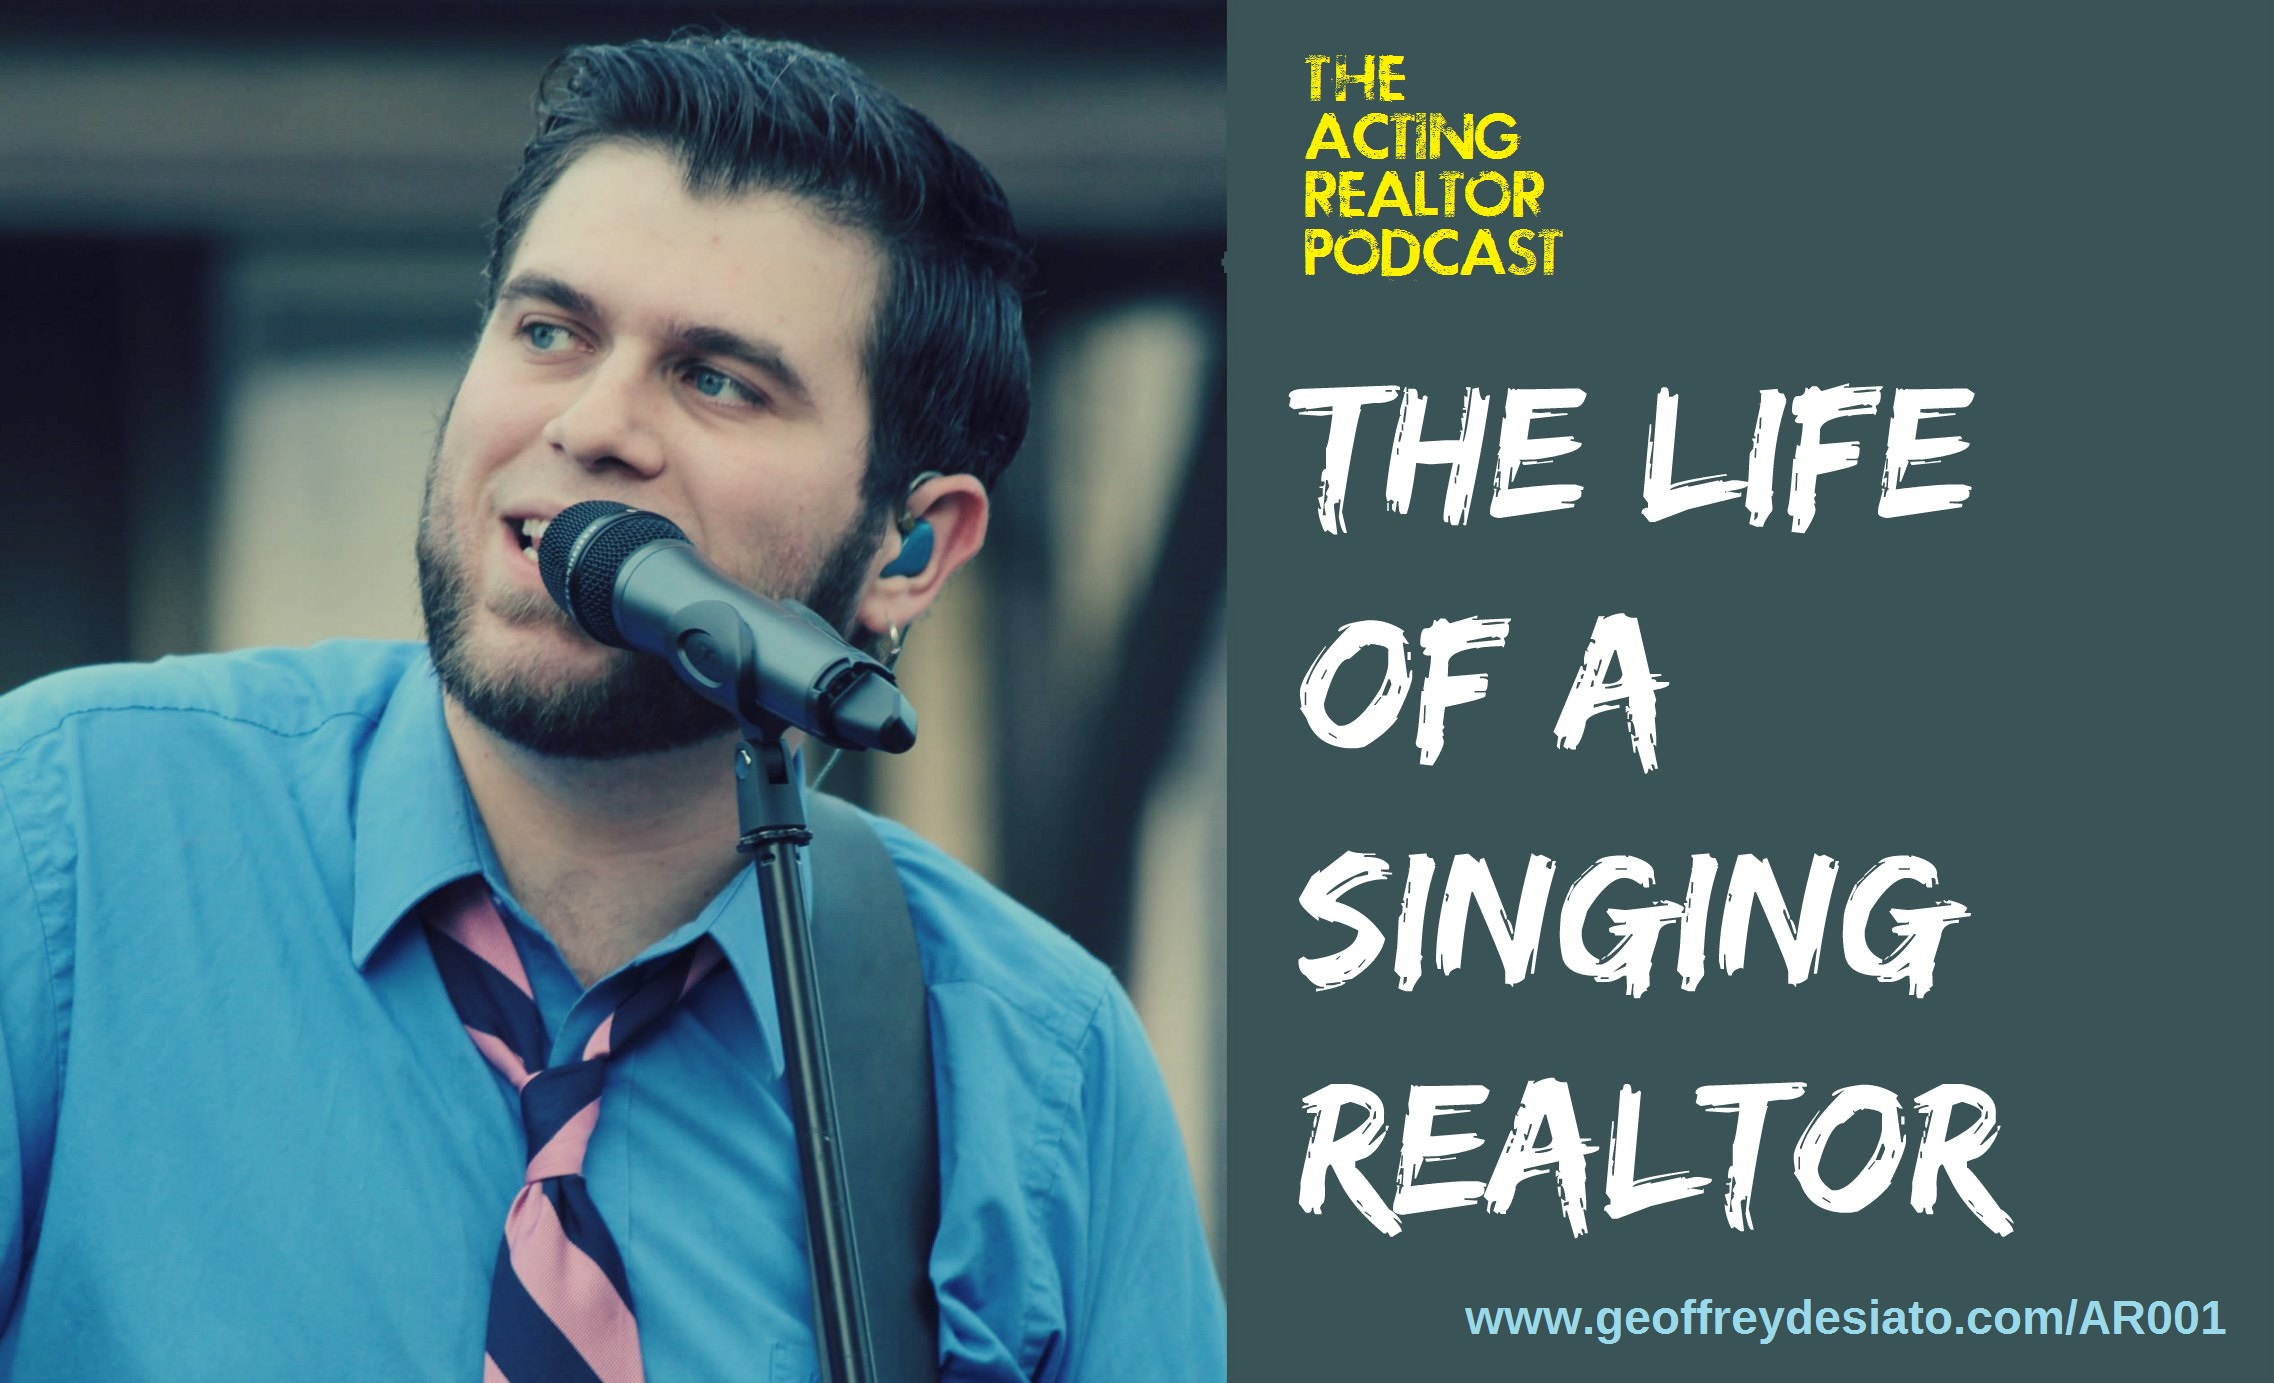 The Life of a Singing Realtor